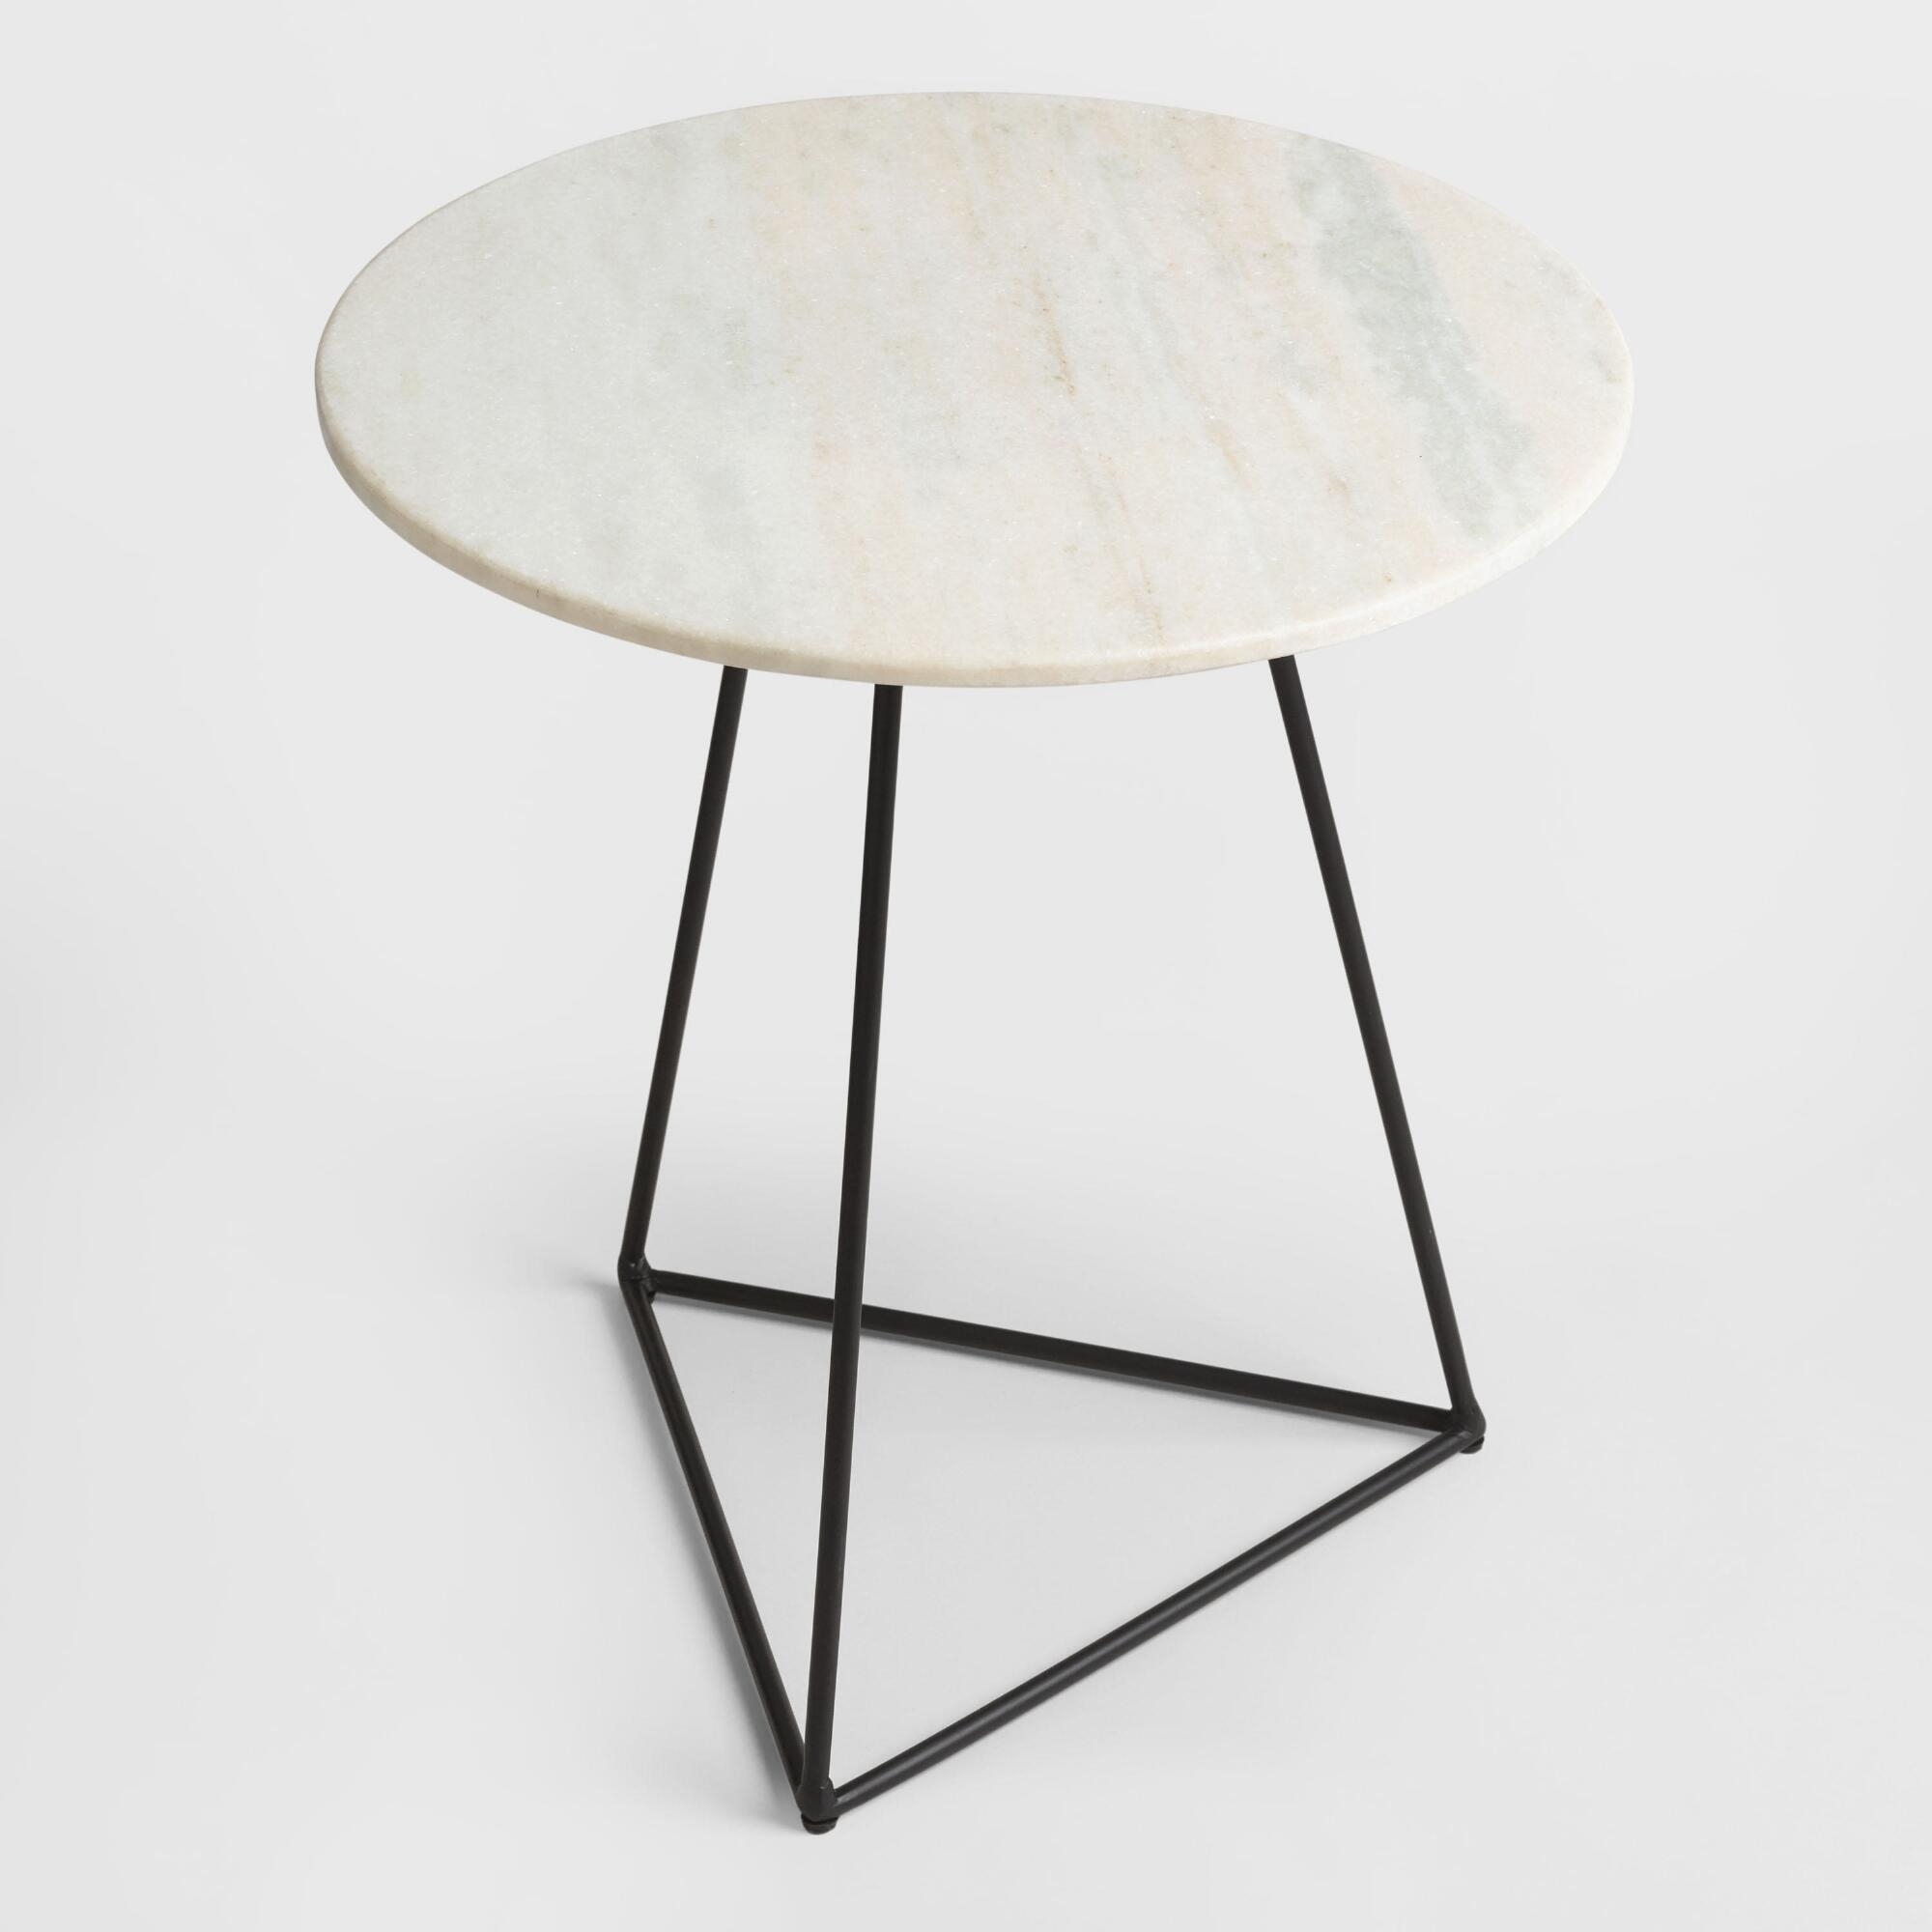 small space coffee side tables world market iipsrv fcgi round accent table skirts white marble and metal narrow farmhouse dining rustic cocktail living room furniture inch high